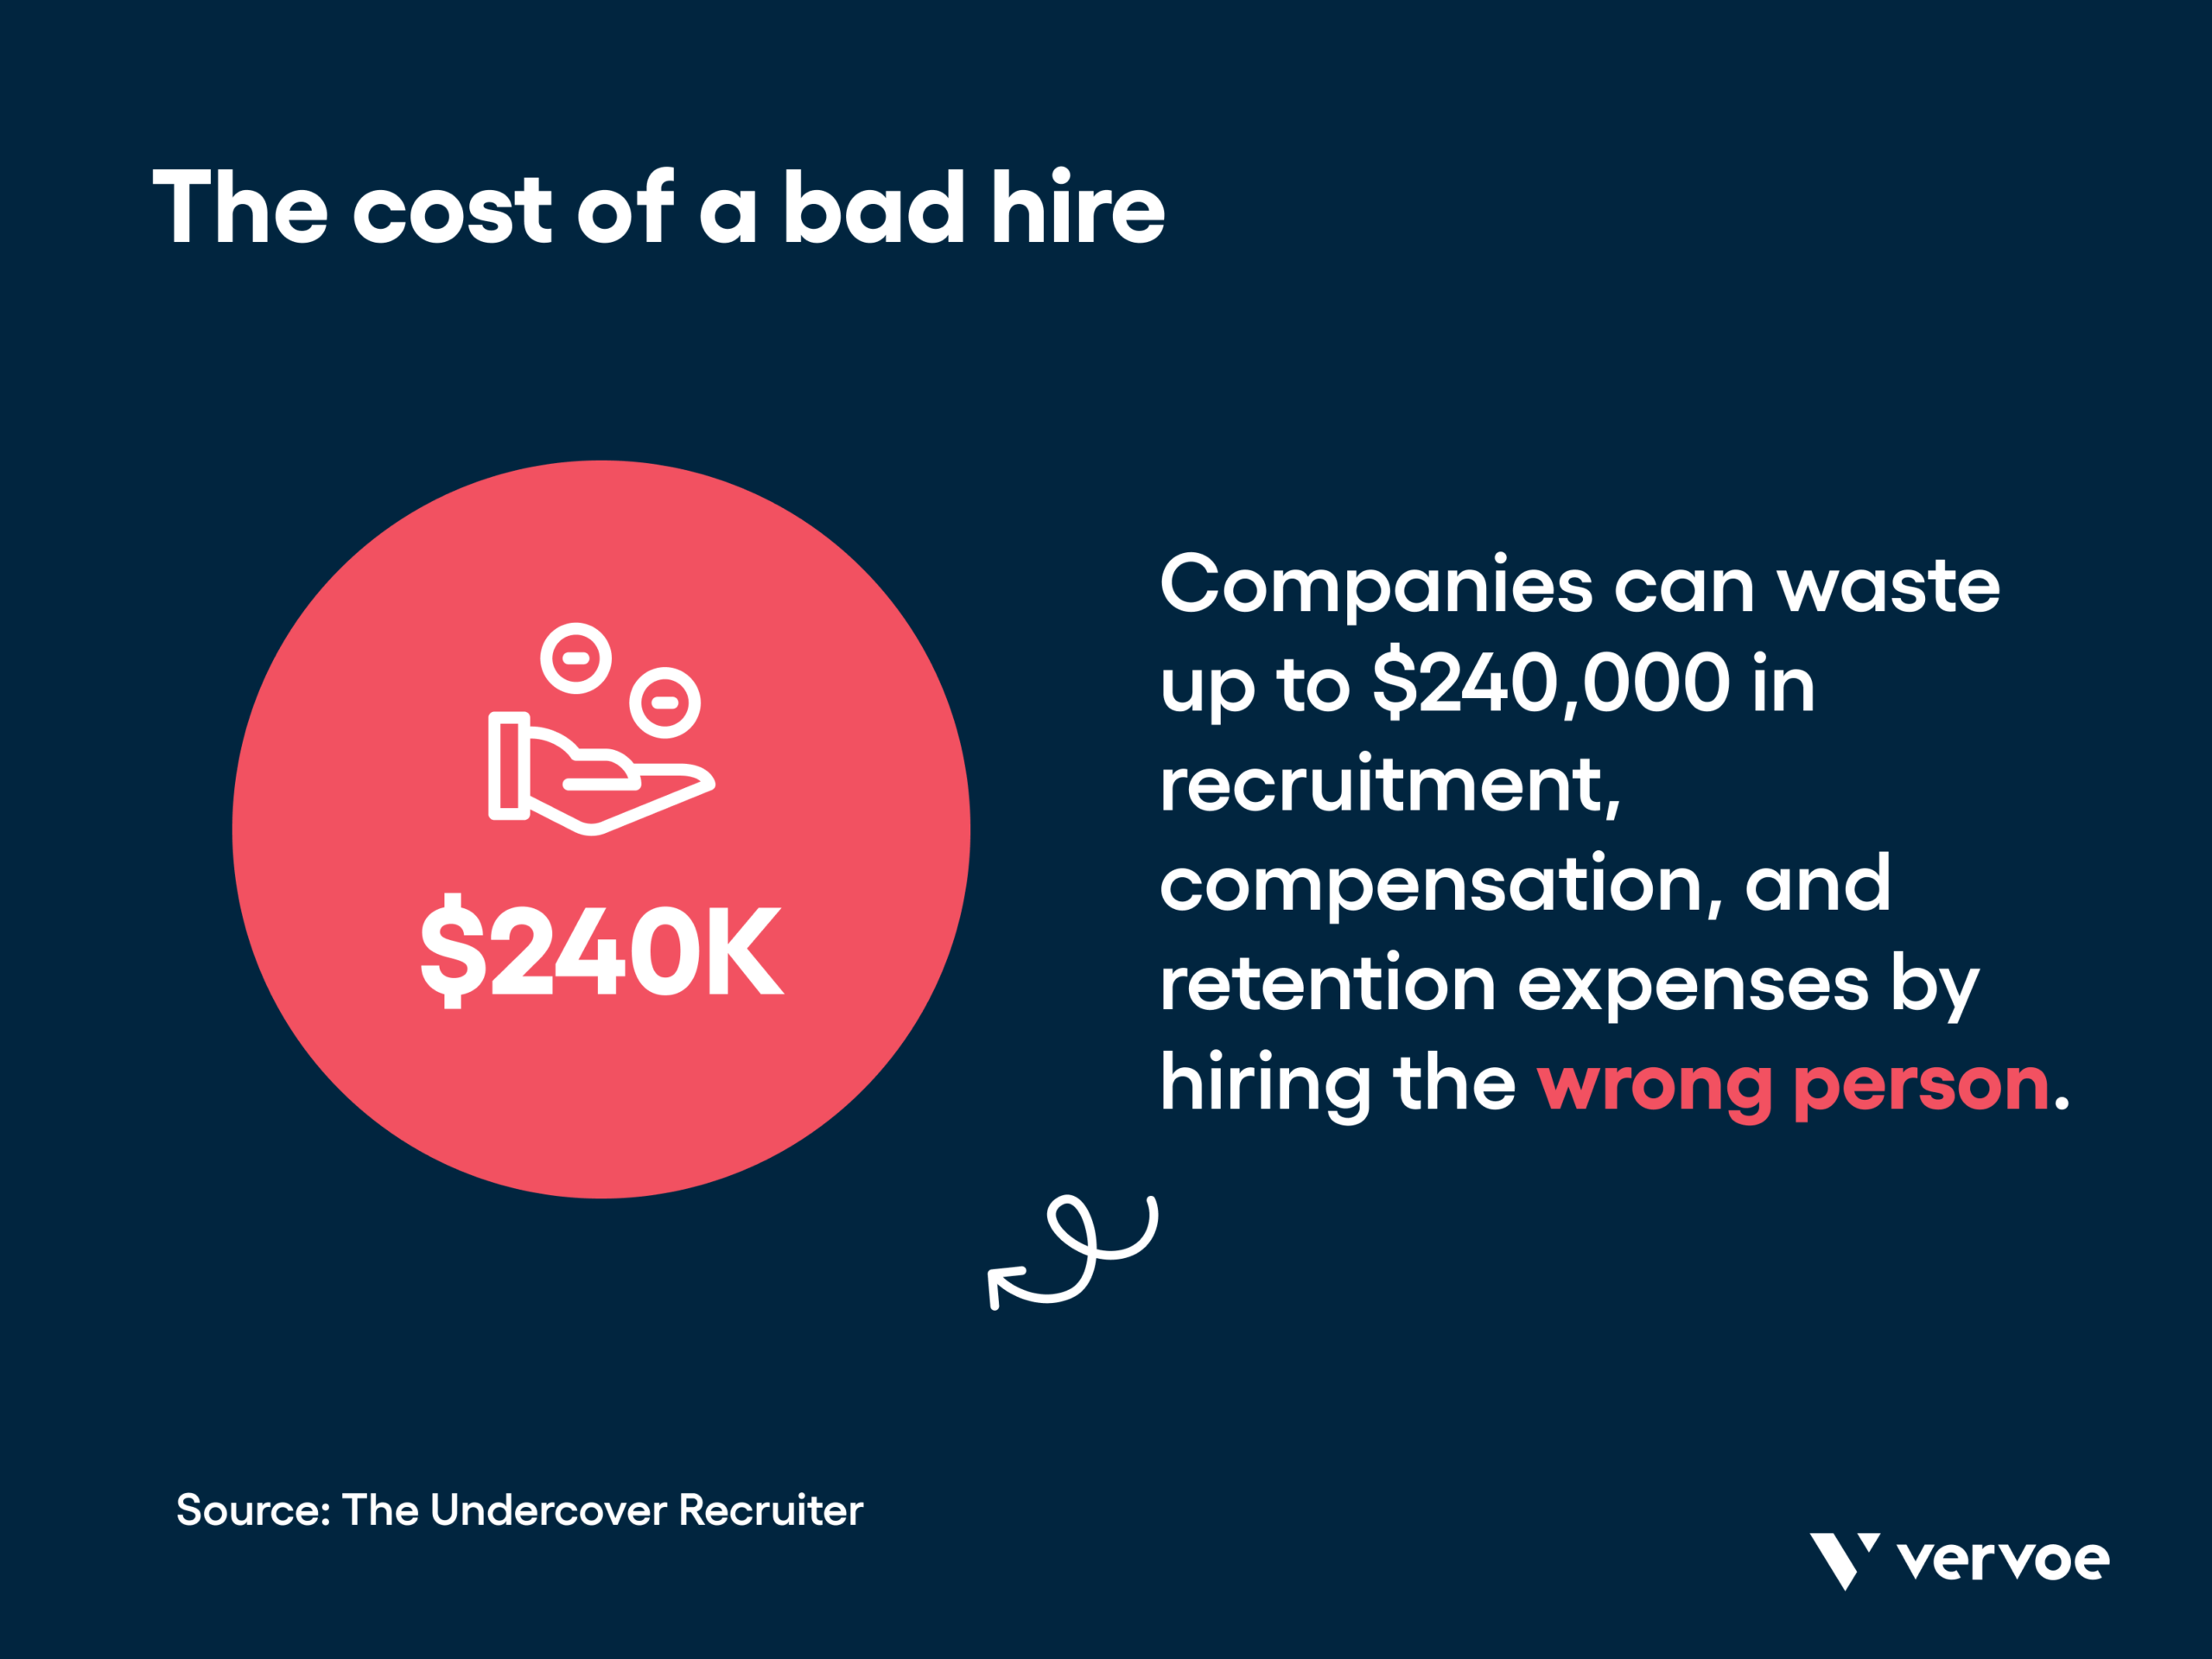 Infographic showing the cost of a bad hire